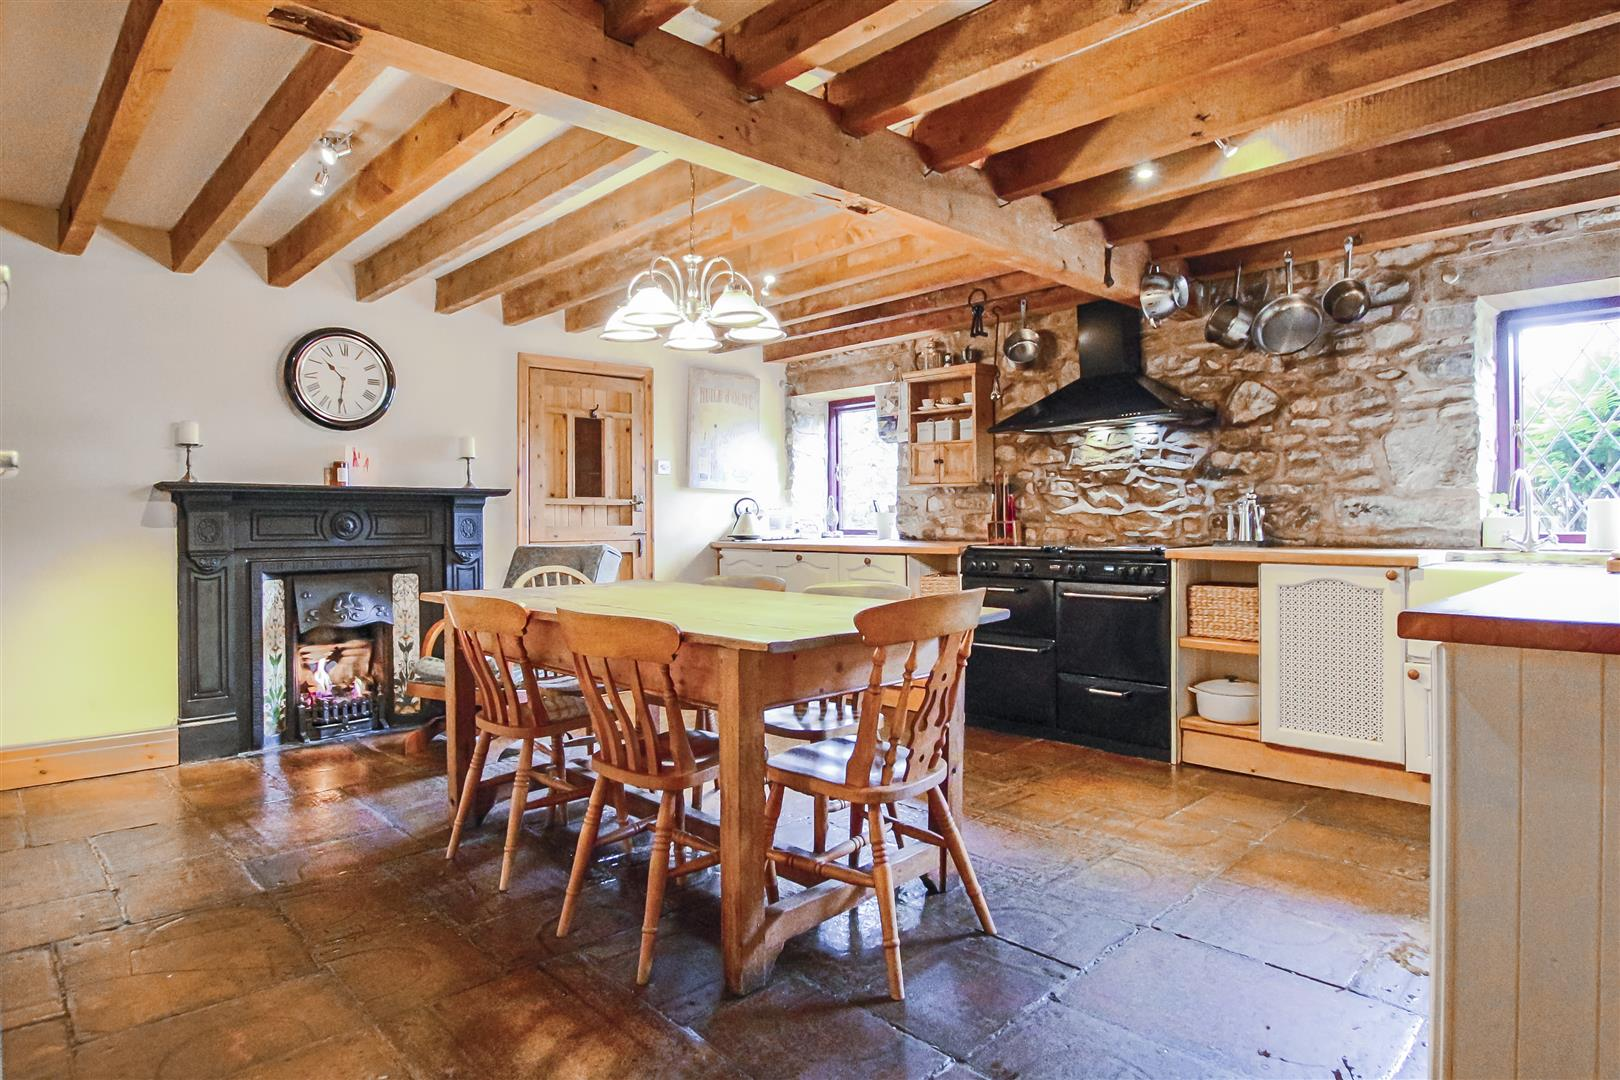 5 Bedroom Barn Conversion For Sale - Image 41